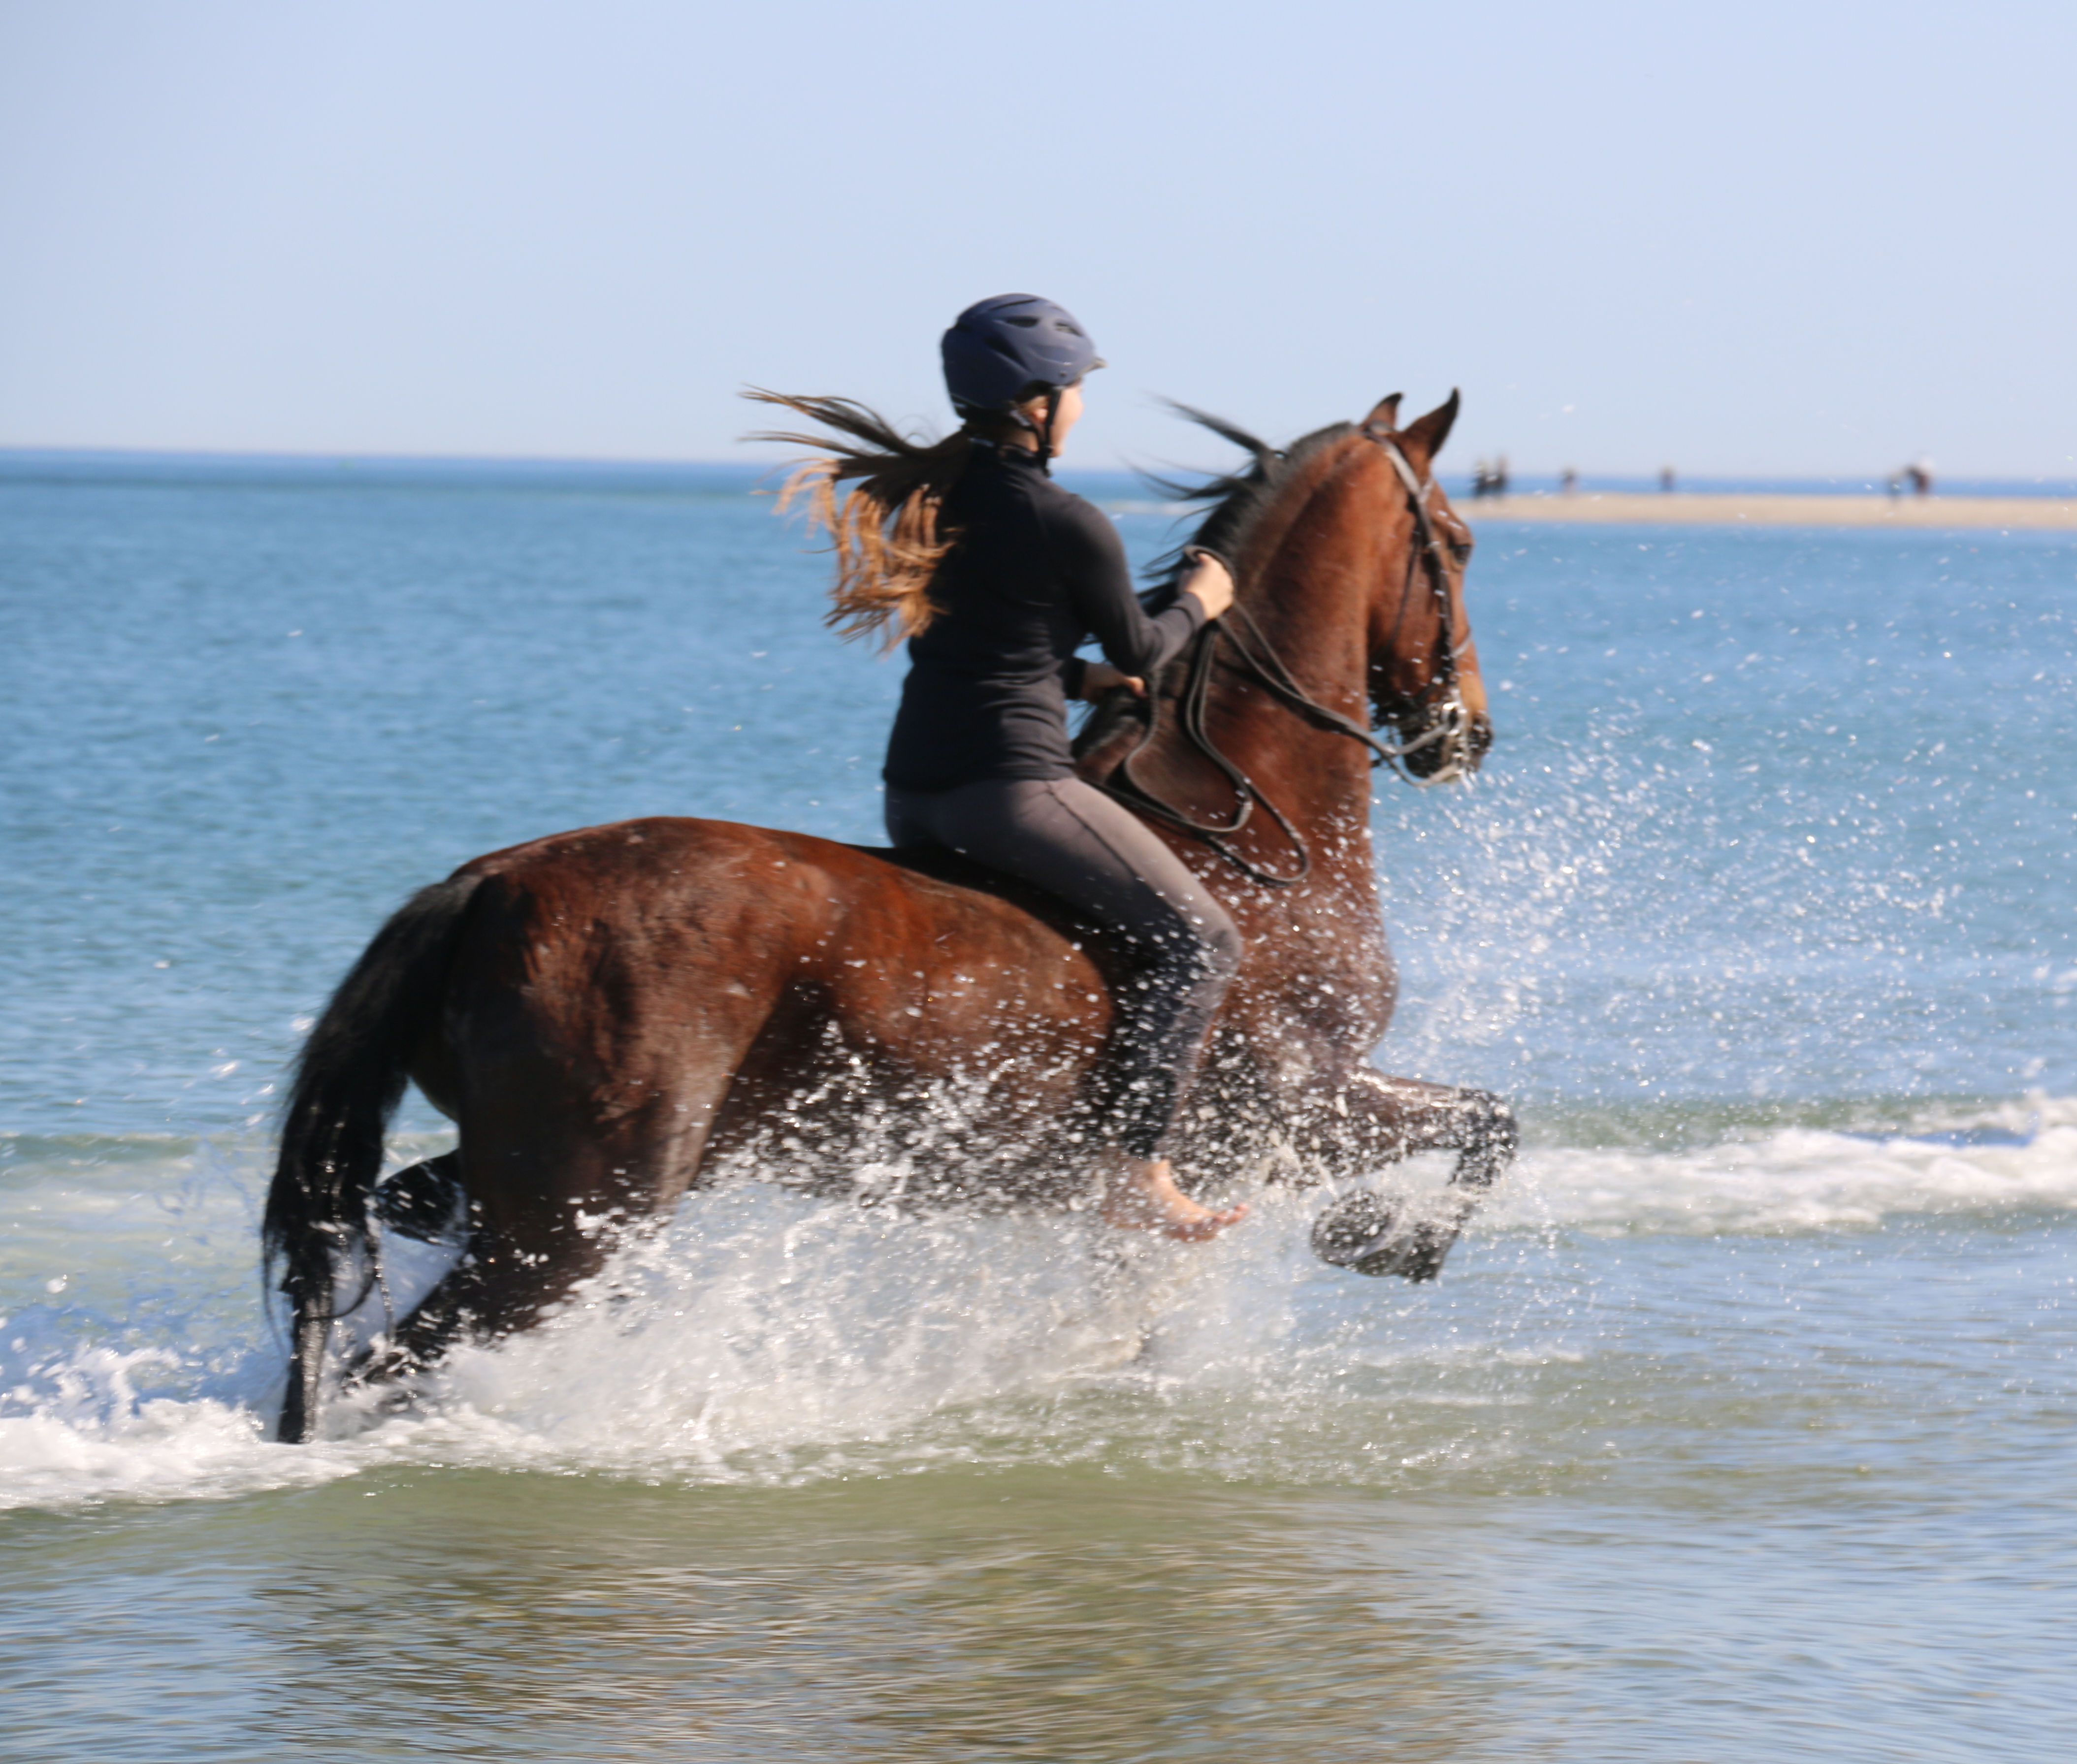 Rose and Mario enjoying riding through water at Crane beach